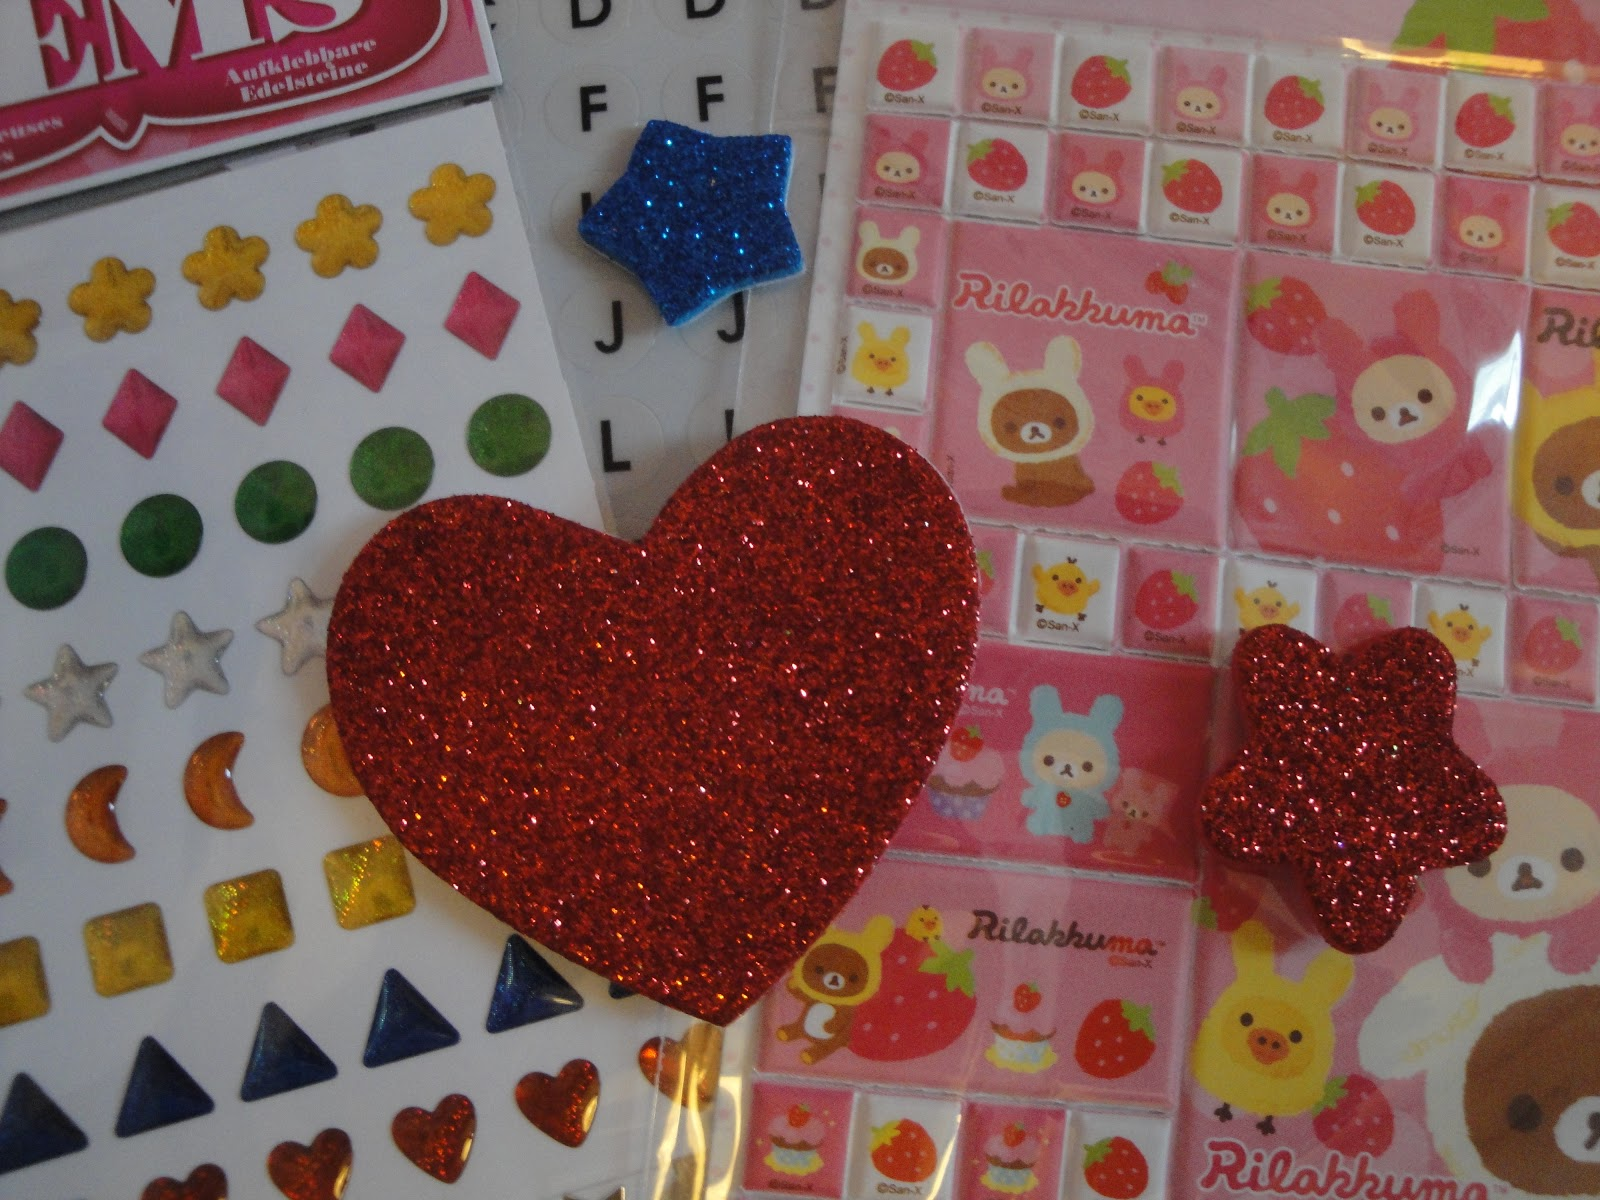 A close shot of a collection of stickers (heart-shaped, stick-on gems, and Rilakkuma stickers).